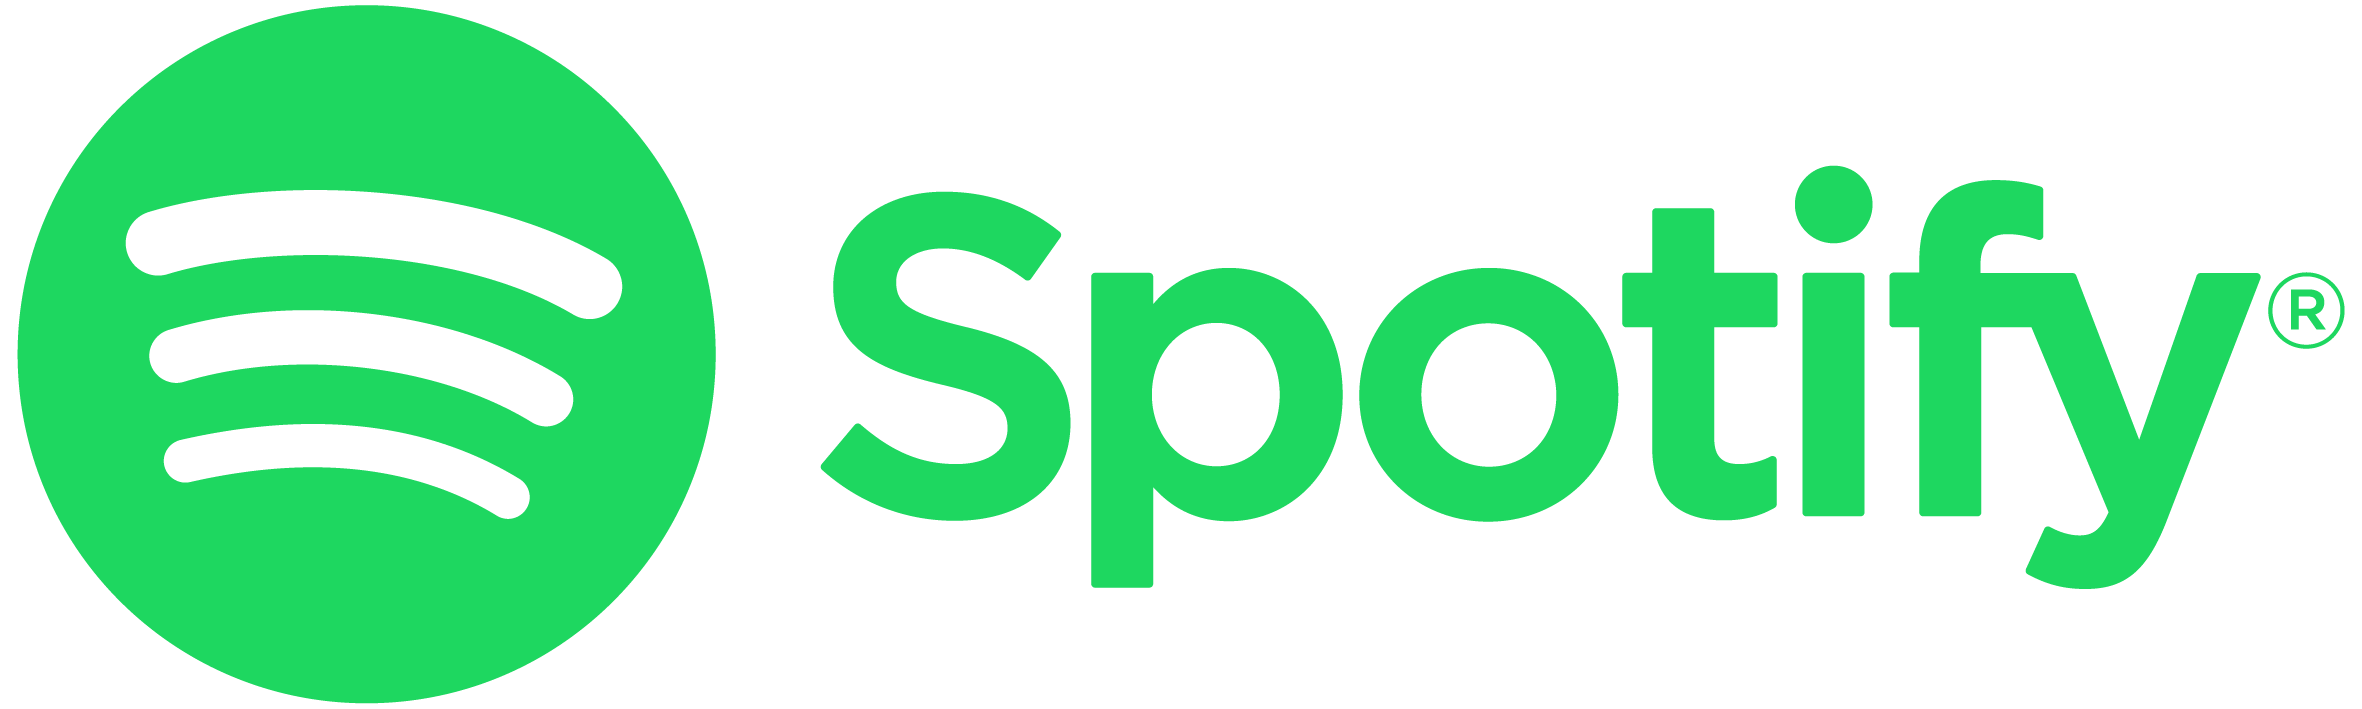 SPOTIFY LOGO - Best Quality - Full Size